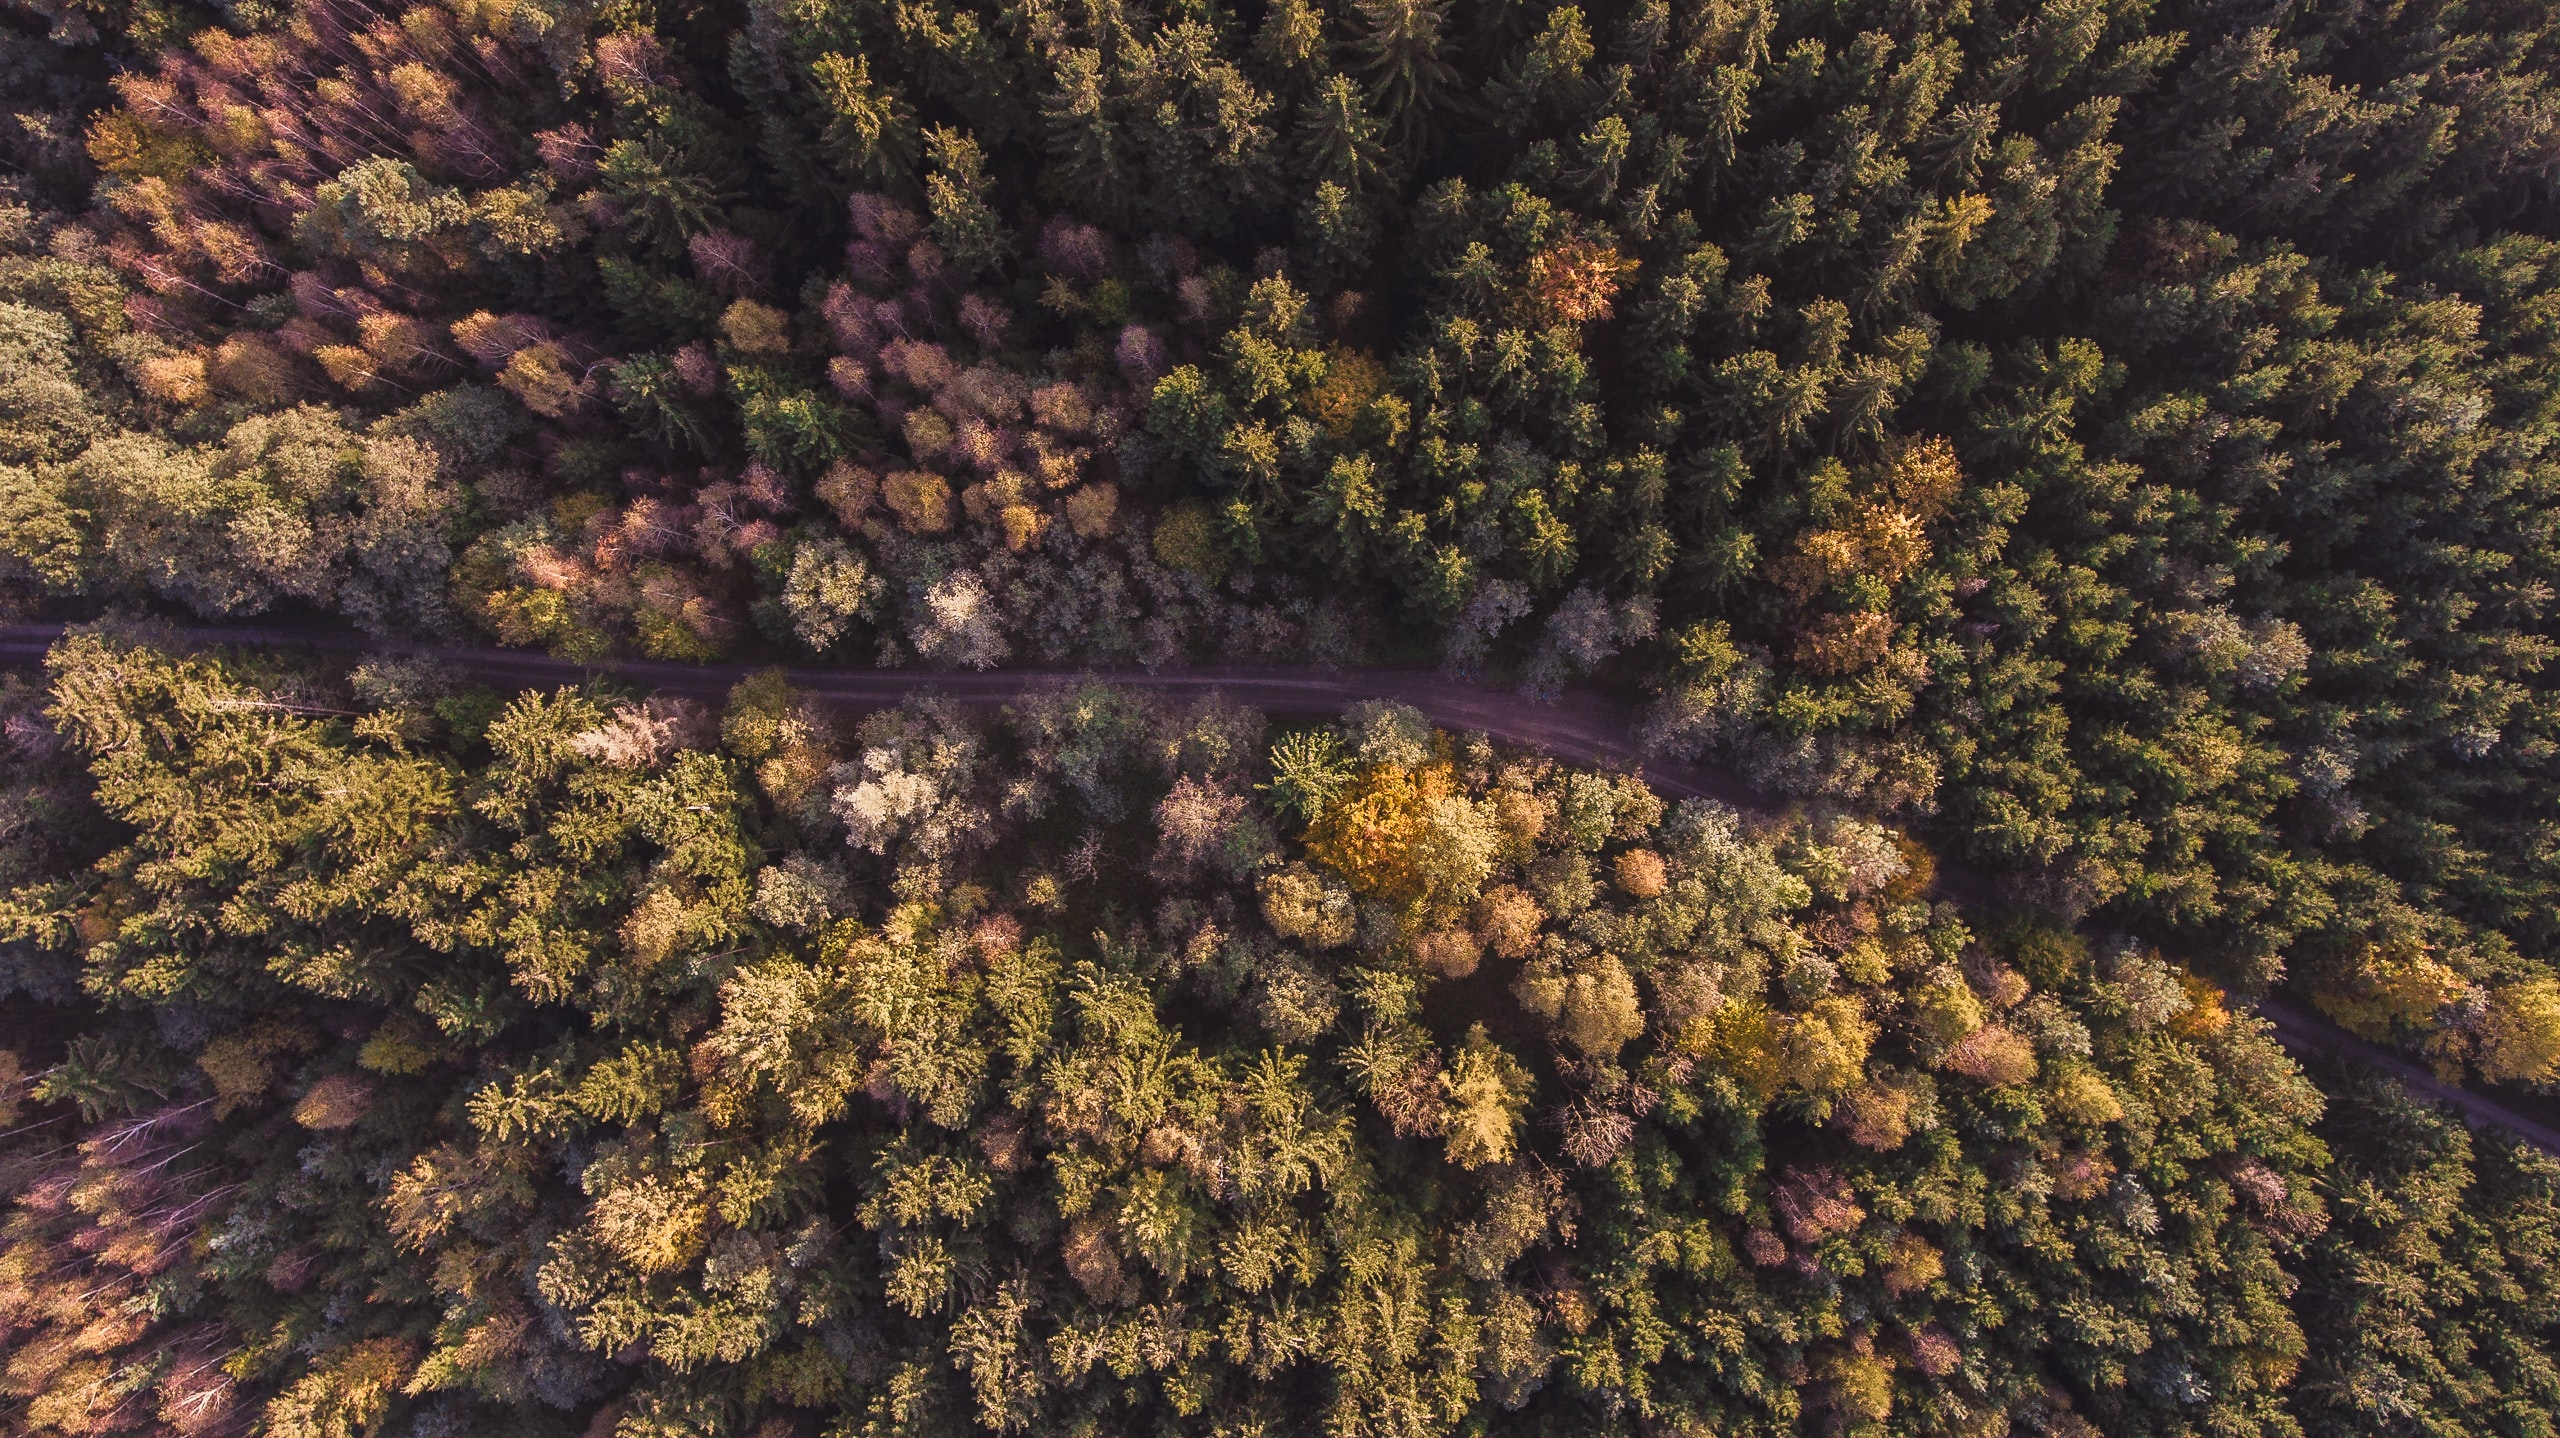 A drone shot of an empty road through a forest